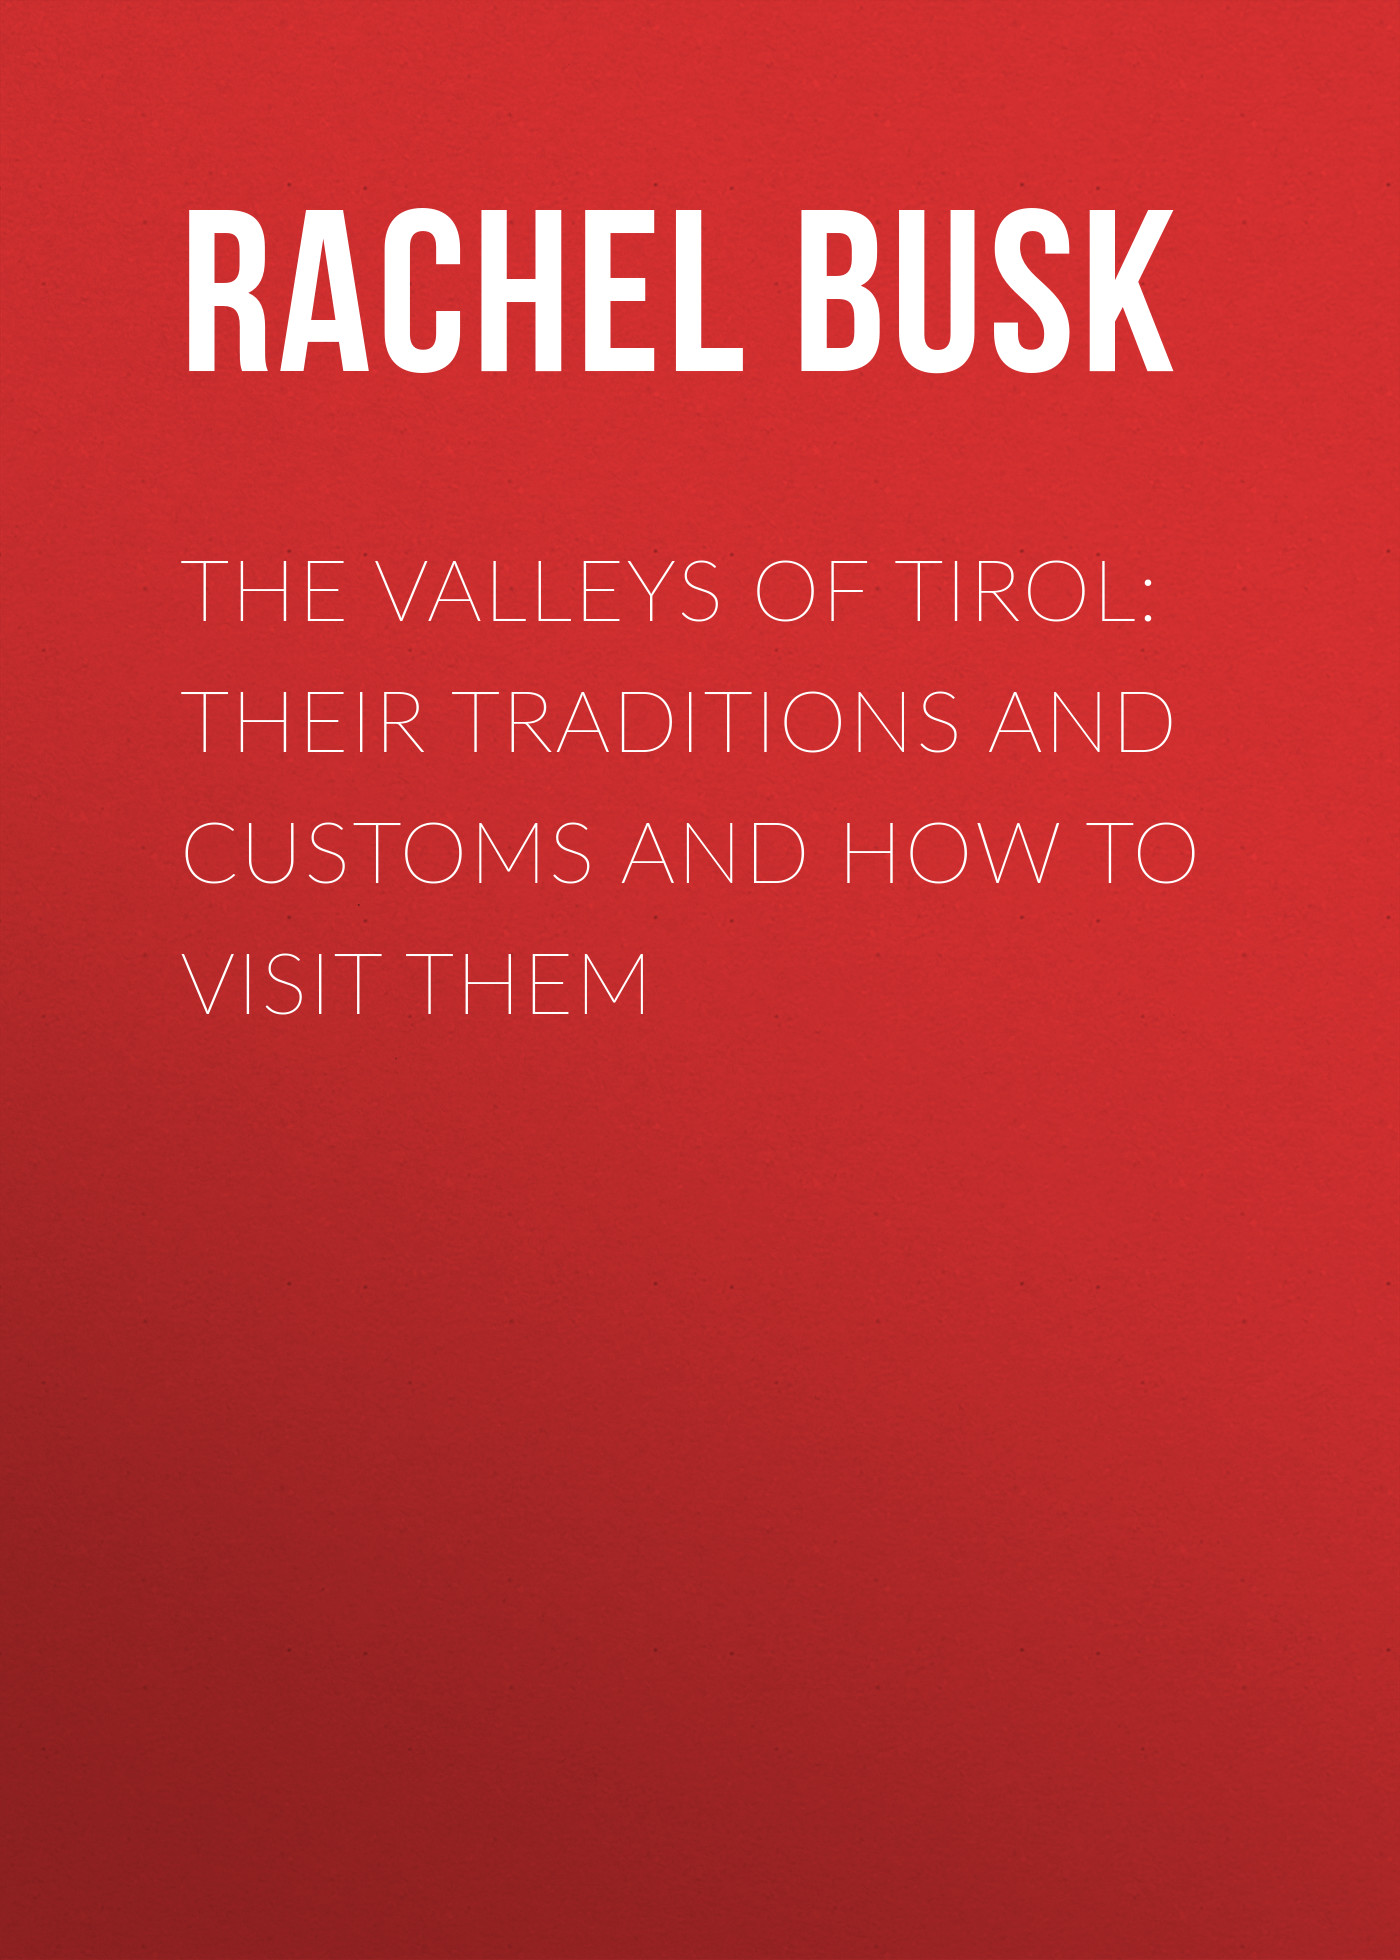 Busk Rachel Harriette The Valleys of Tirol: Their traditions and customs and how to visit them все цены